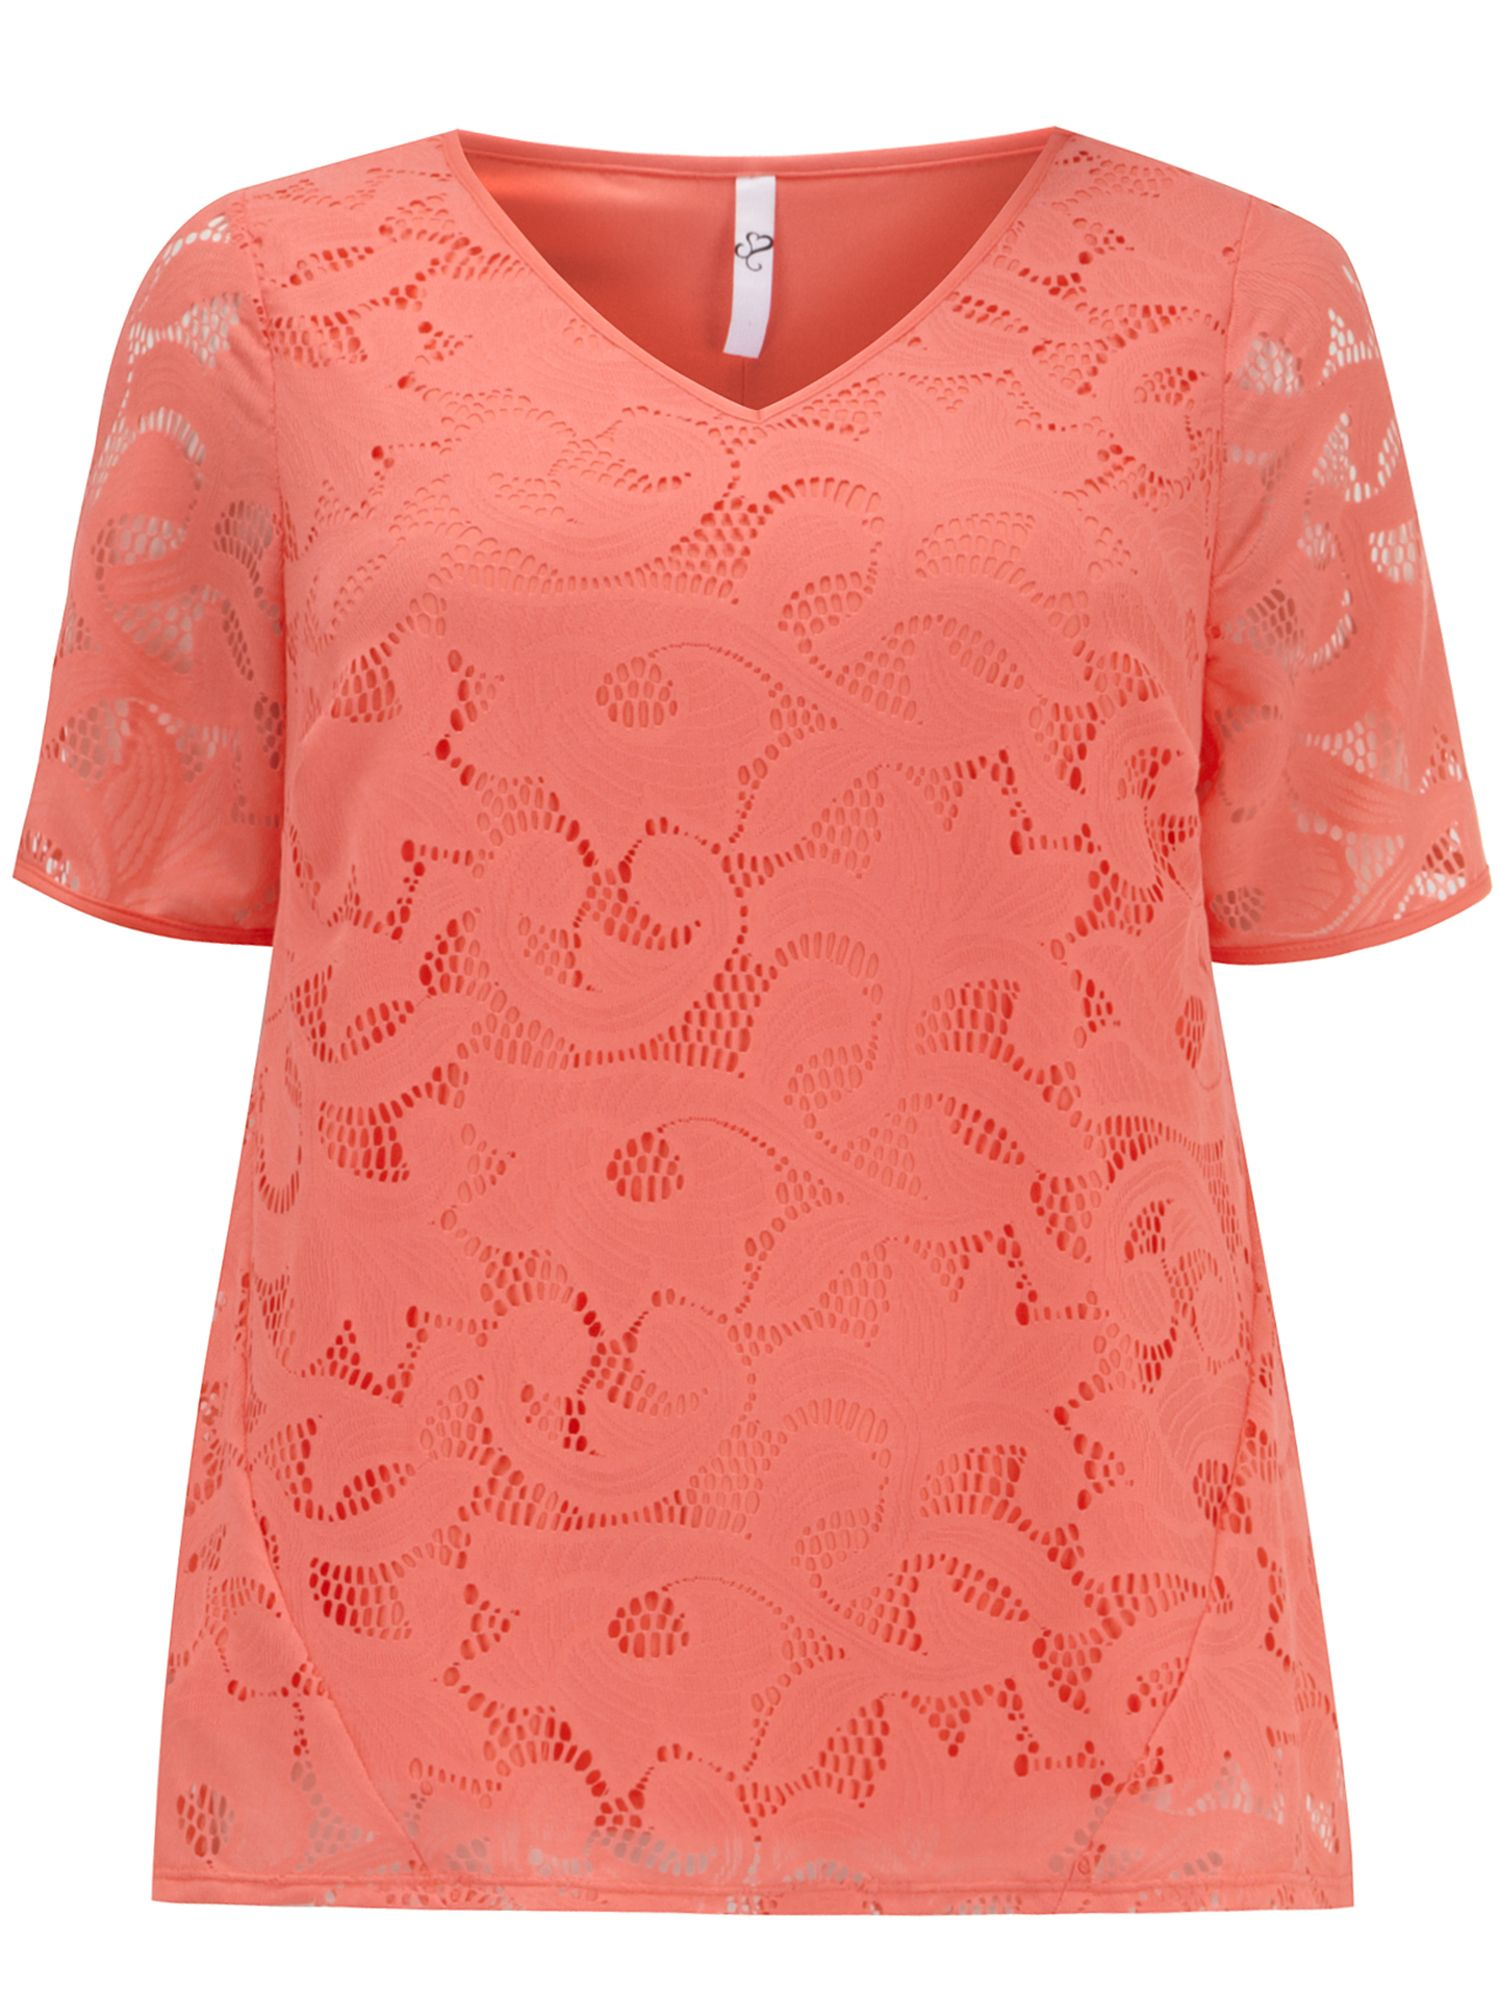 Coral lace shell top